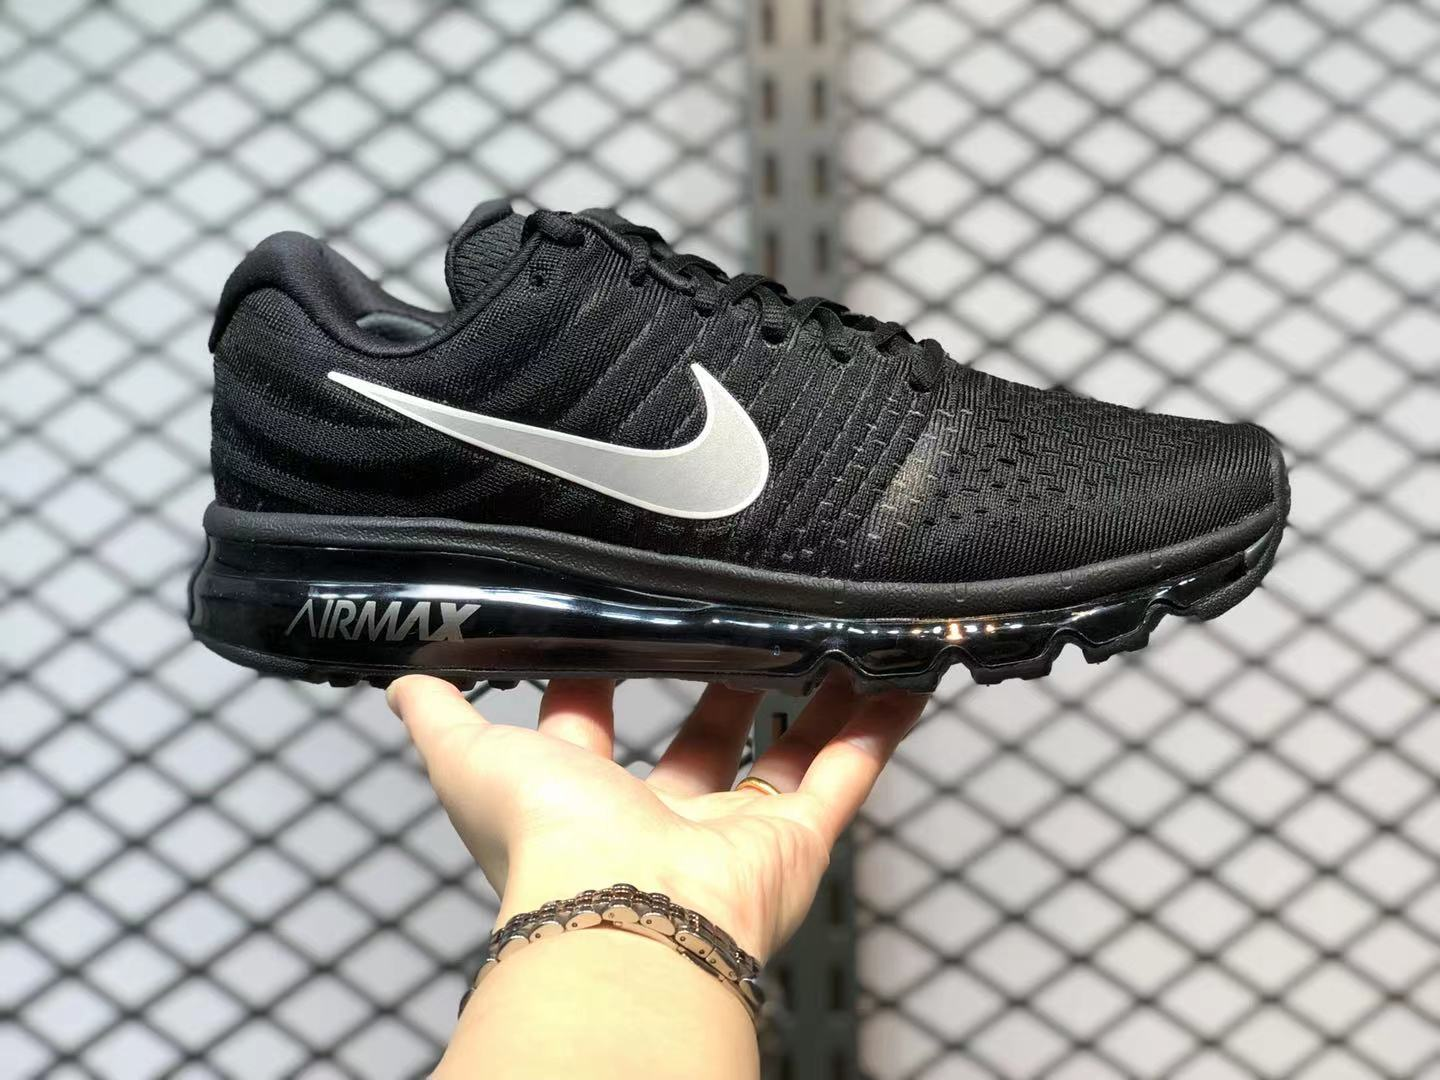 Latest Nike Air Max 2017 Black/Silver Sneakers 849559-001